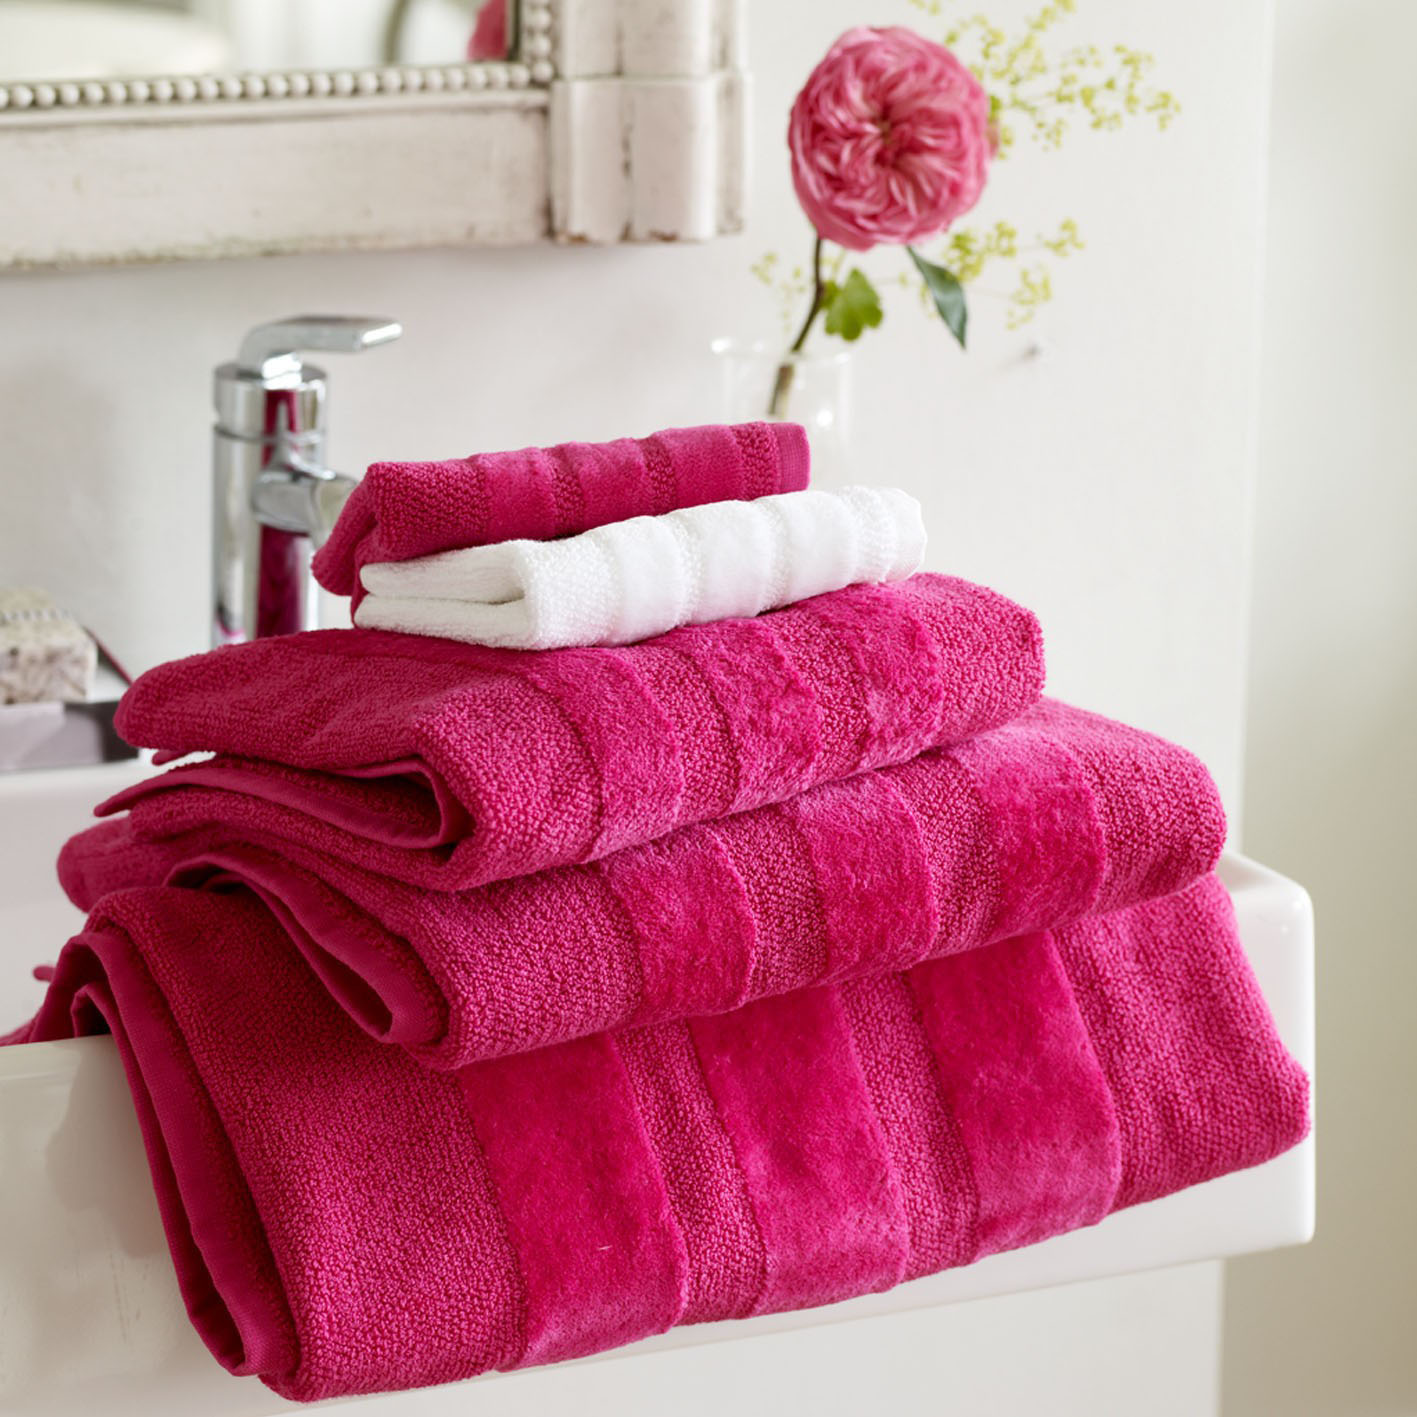 Hard Goods Towels and Robes Buying Agency in Delhi